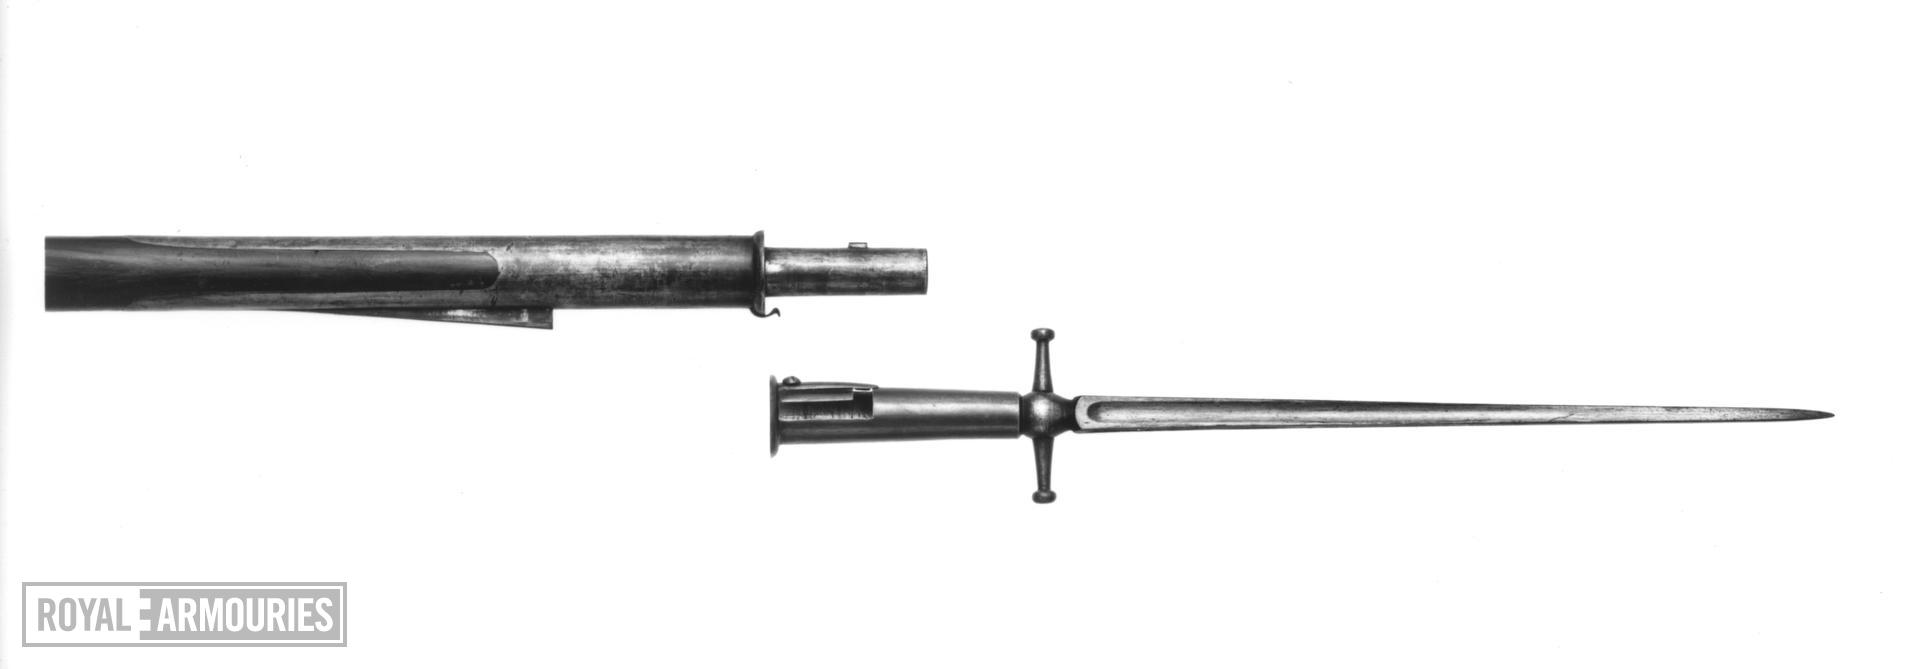 Percussion muzzle-loading military rifle - Brunswick rifle Commercially made with pike